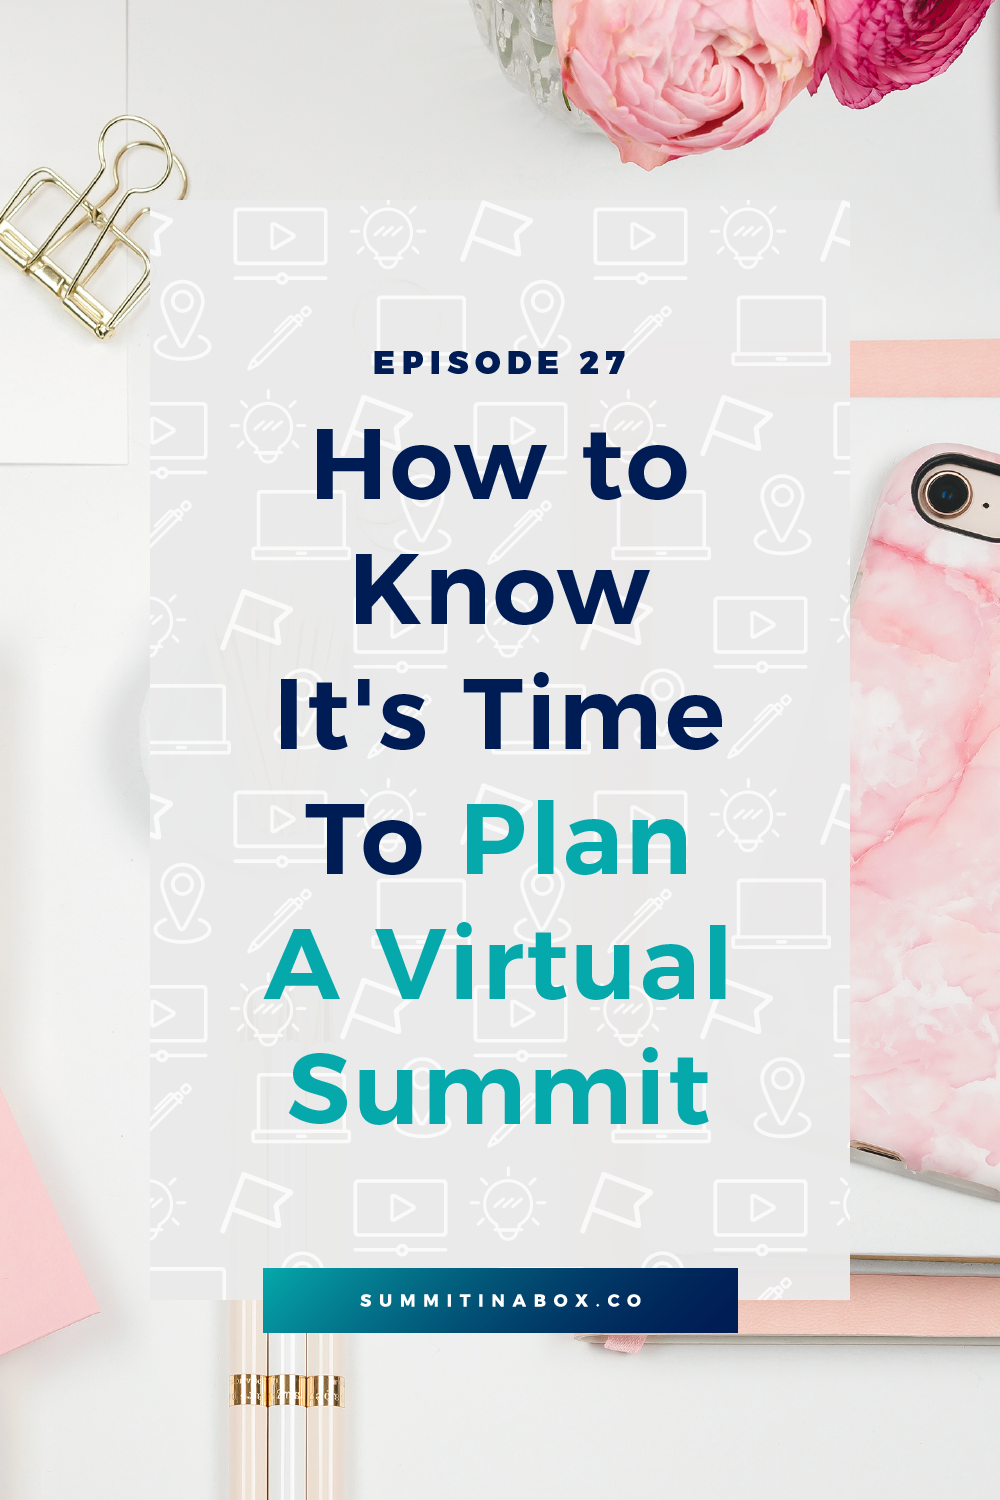 Wondering whether you're really ready to host your first virtual summit? Here are the 3 things you need as well as 3 things you shouldn't wait around for.